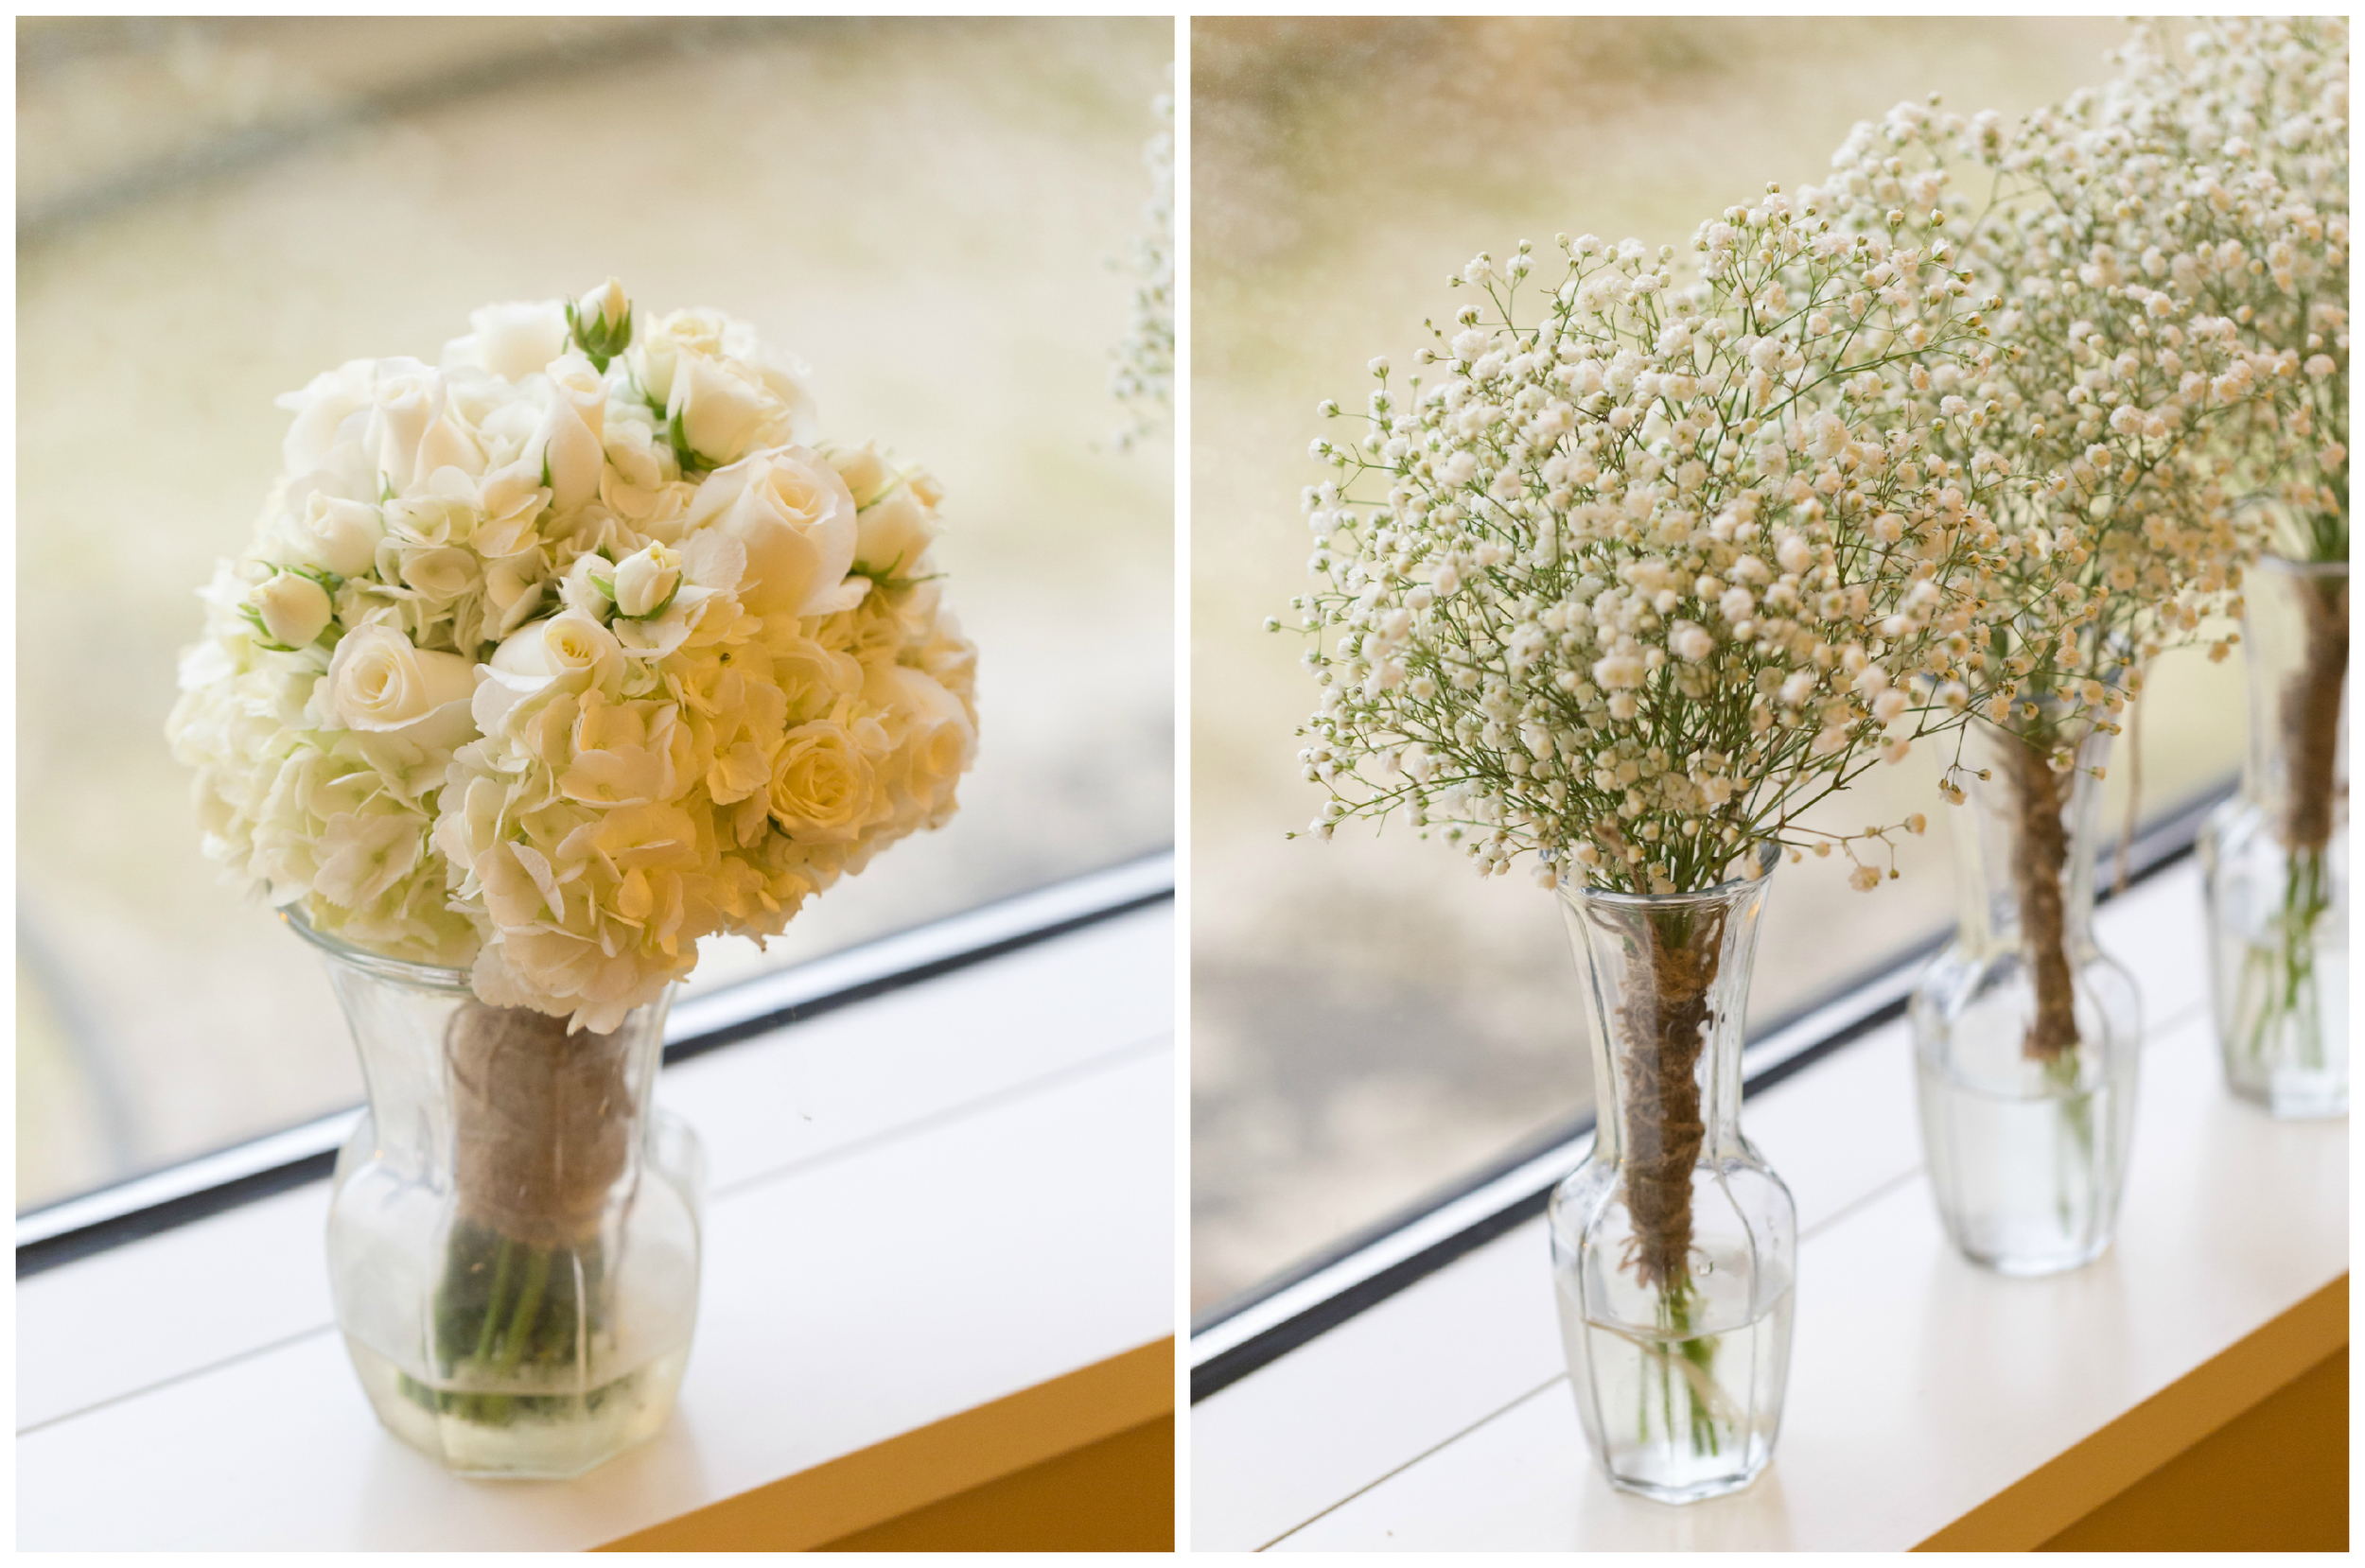 white wedding bouquets (bride and bridesmaids) with roses and baby's breath